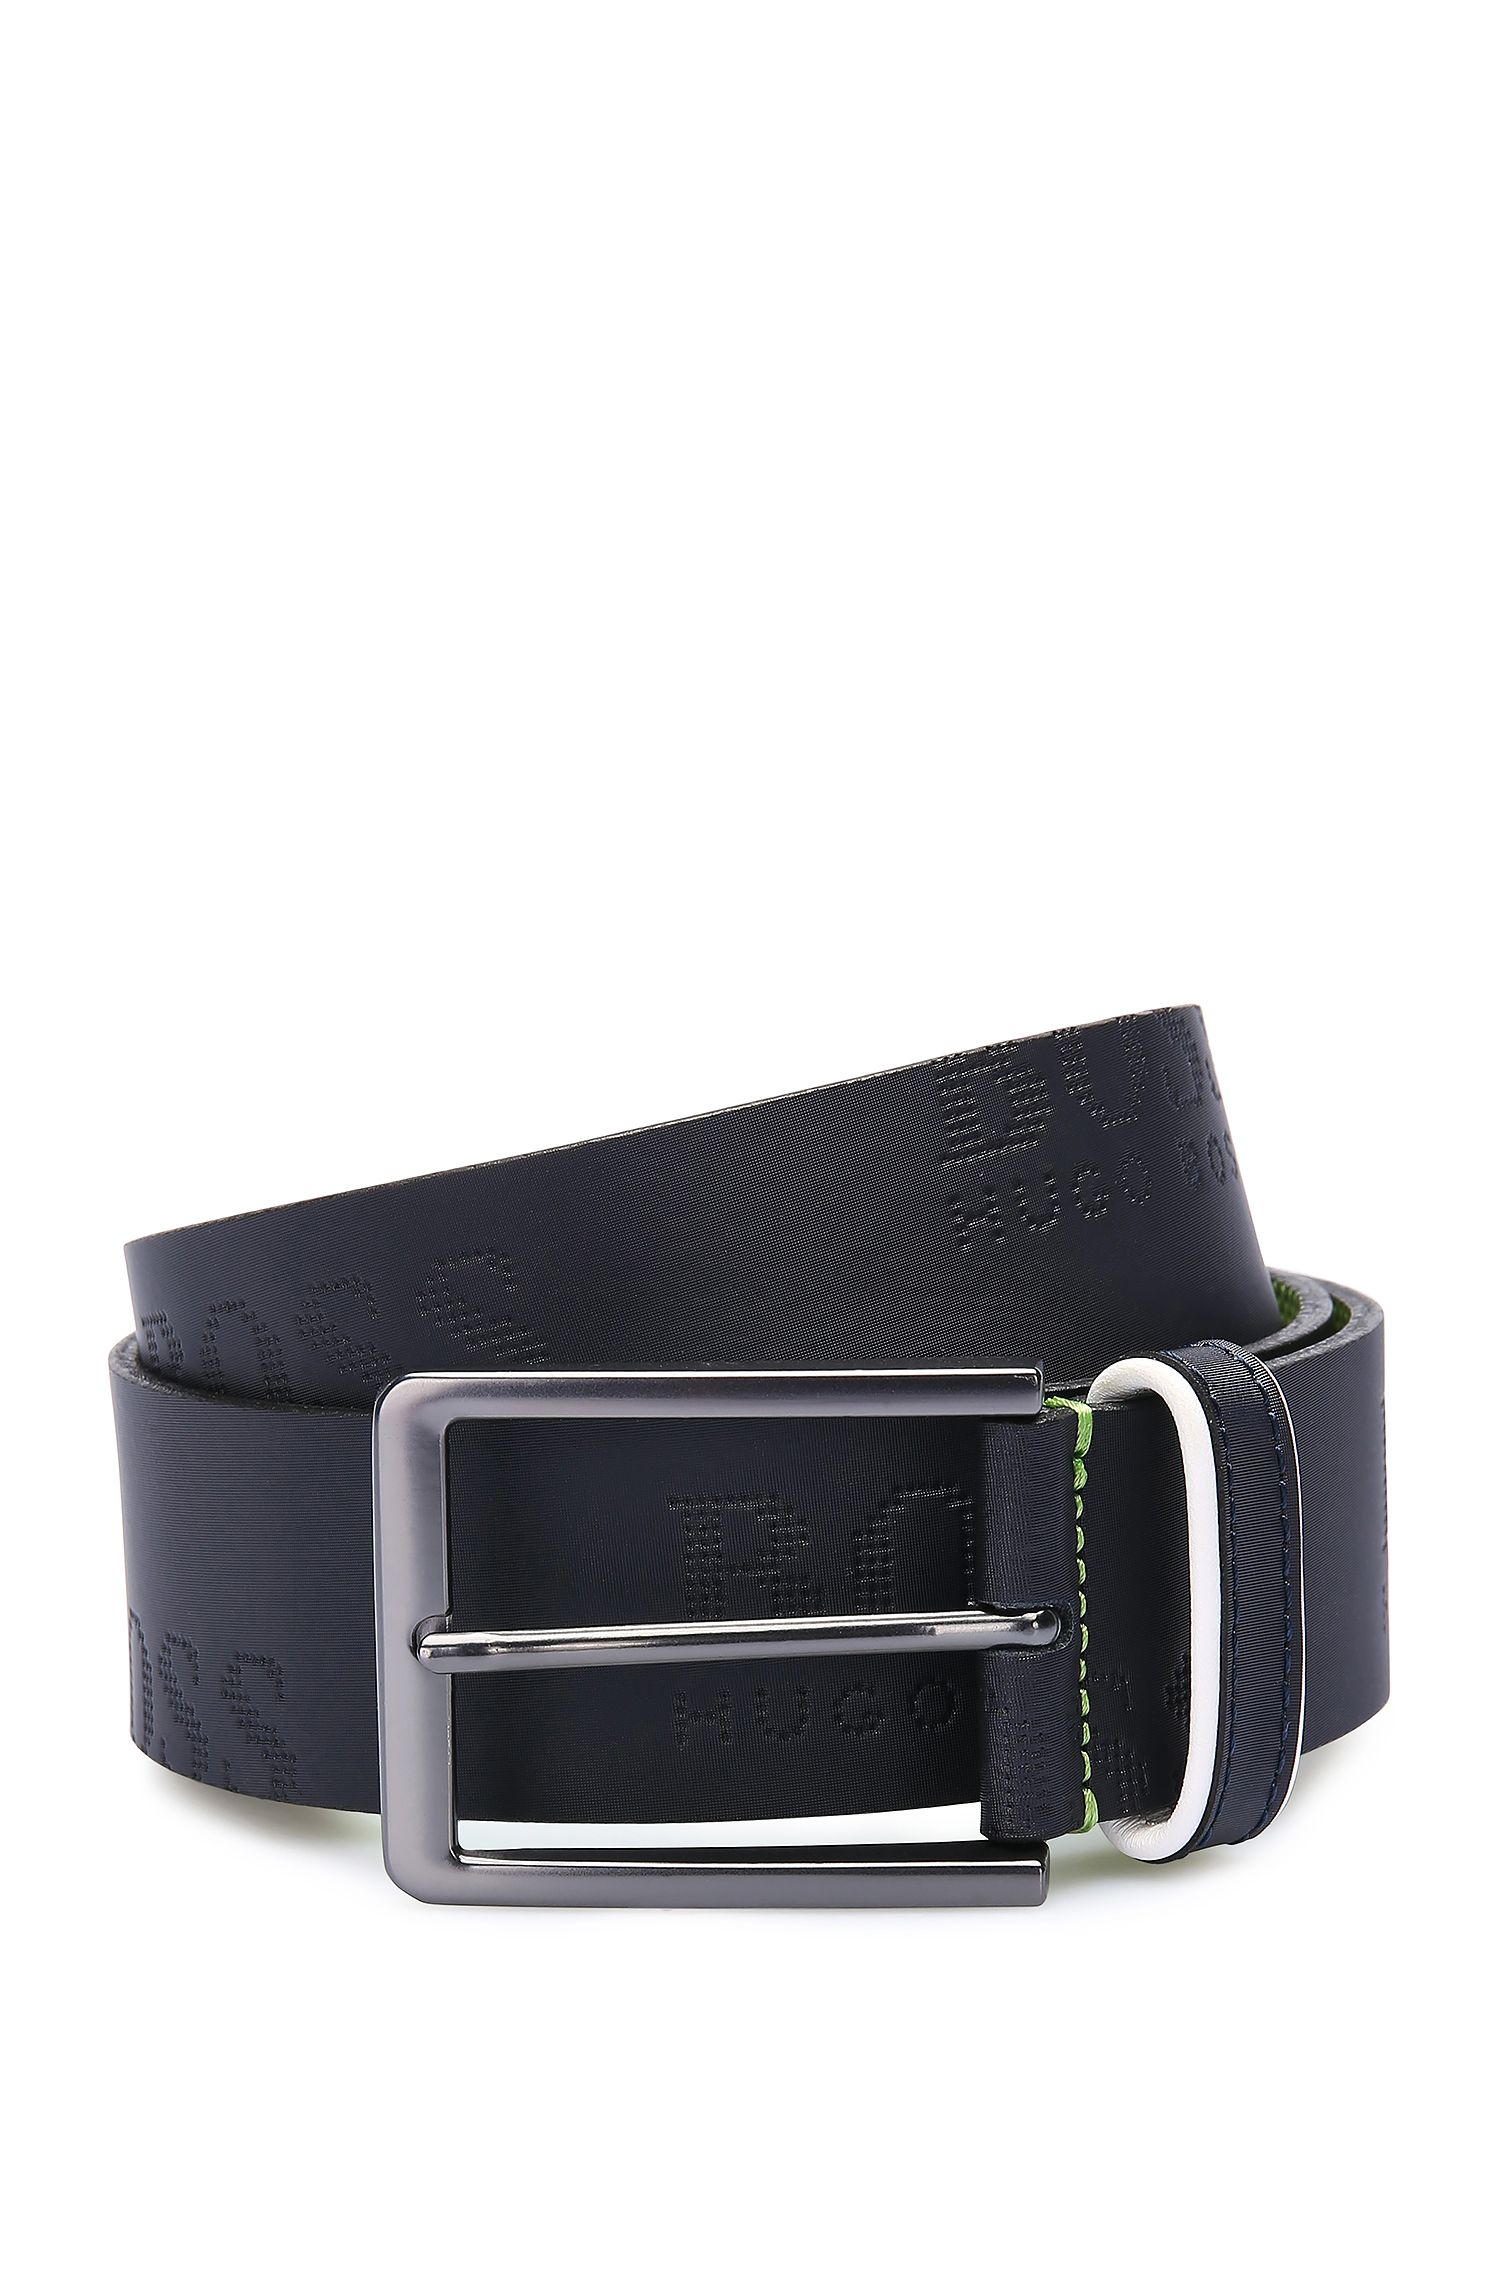 Handmade leather belt with embossed logo: 'Millowo_Sz40_ltem'